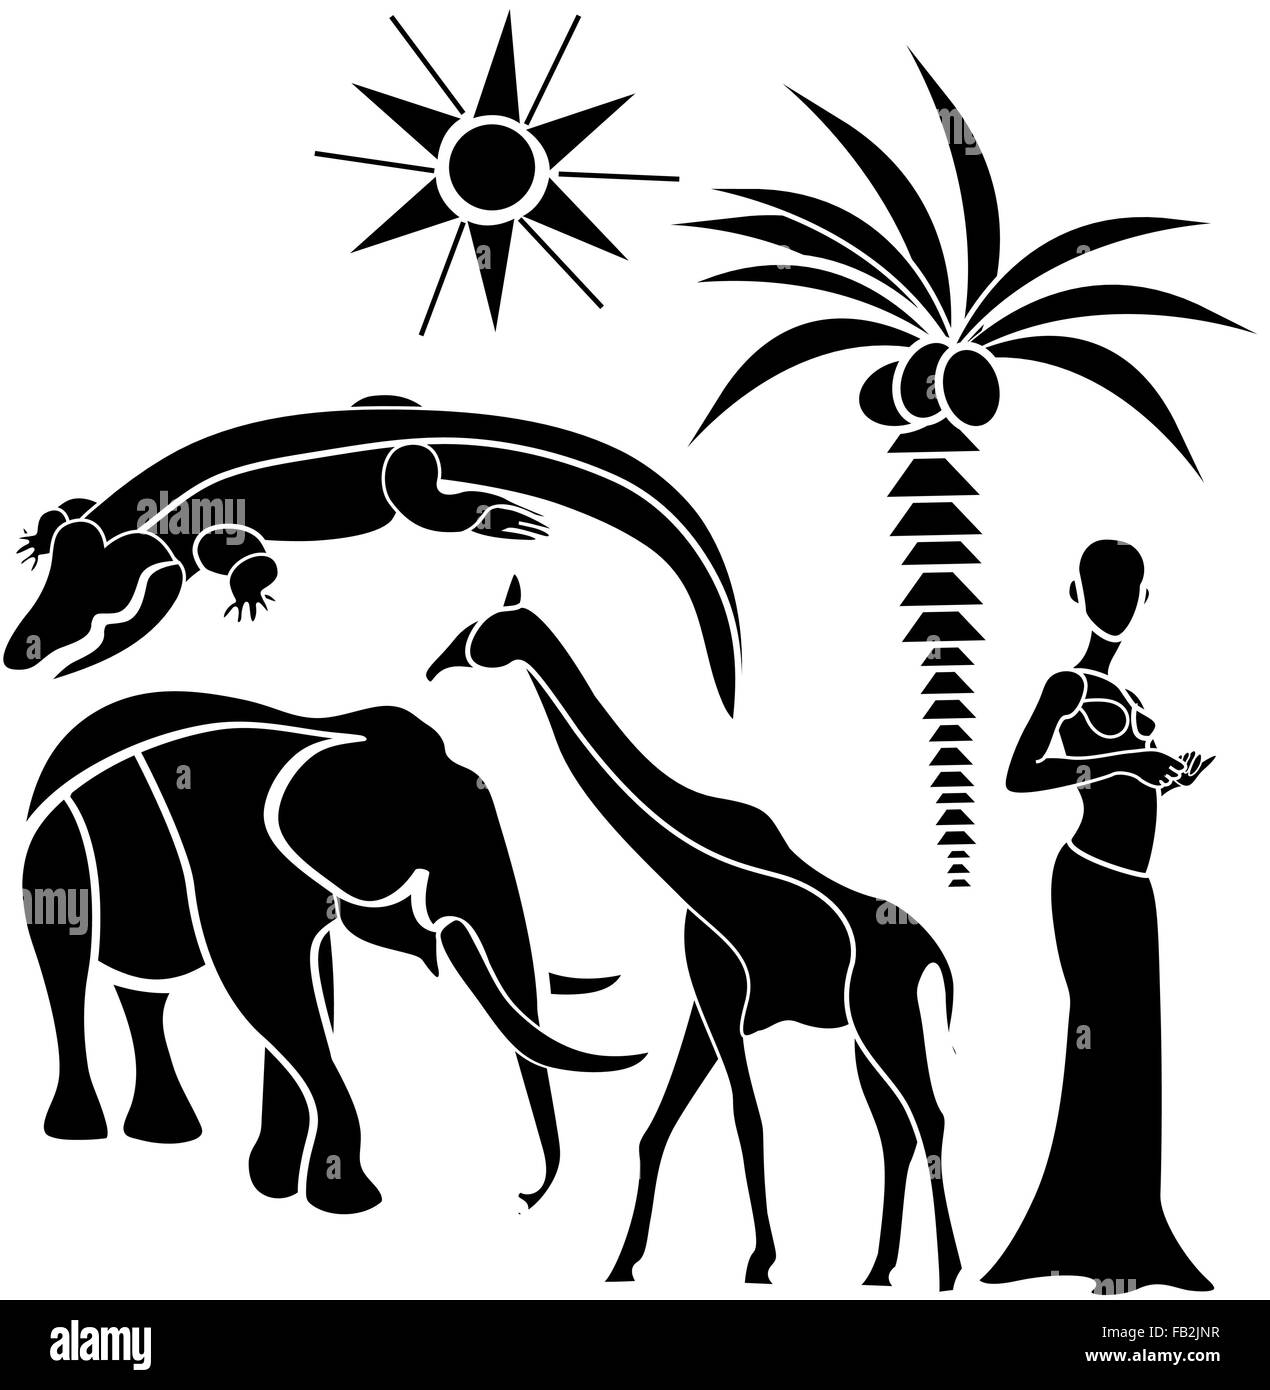 Pattern background african africa culture art traditional indigenous